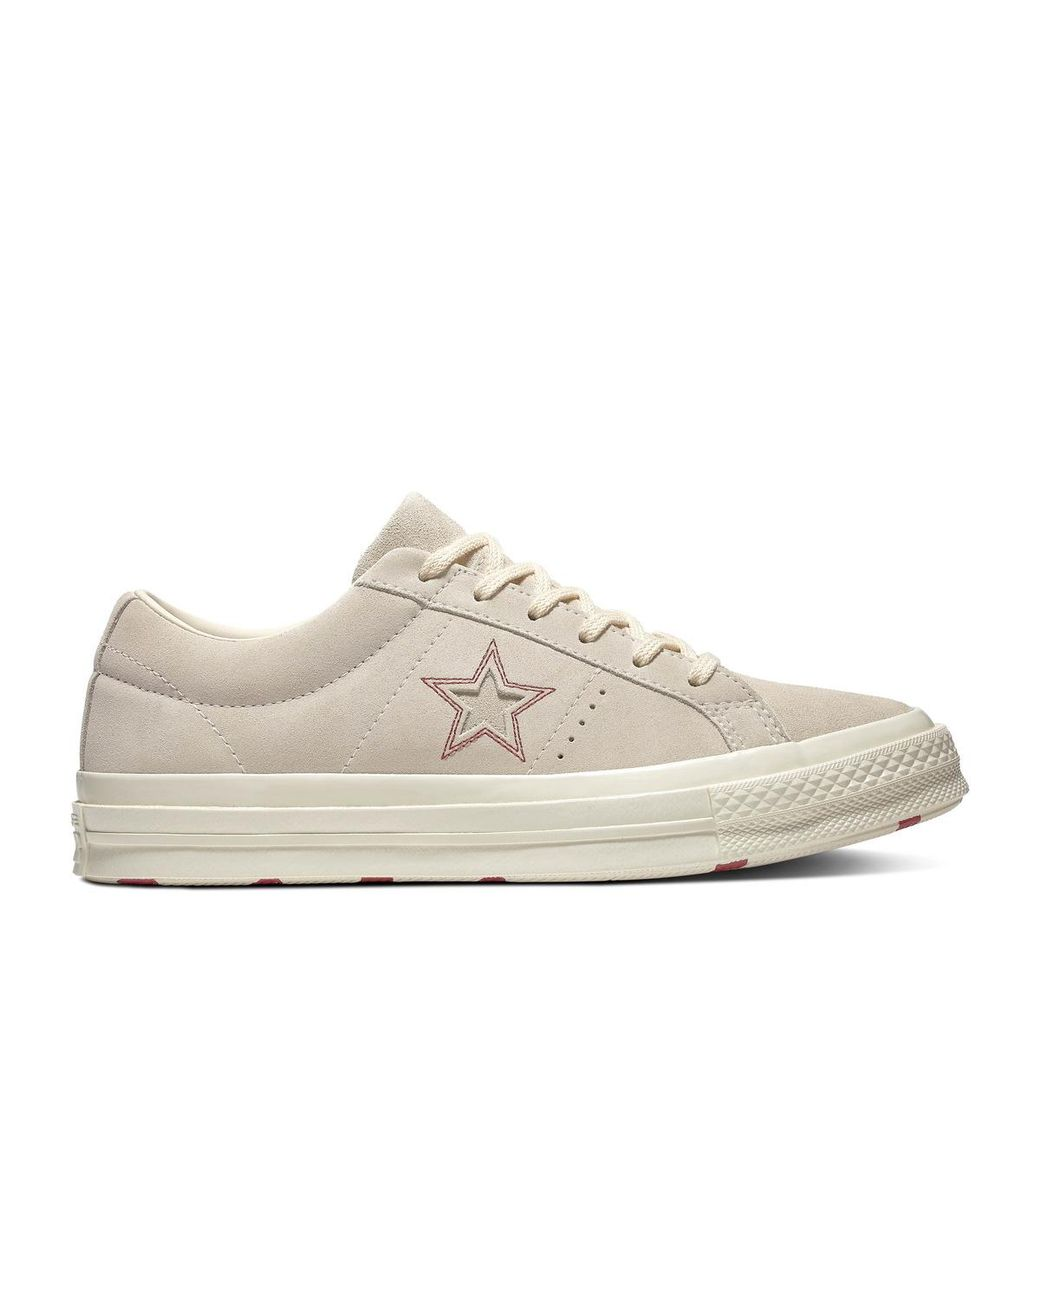 495f1a0a5eaf Converse. White One Star Love In The Details Unisex Casual Suede Low-top  Trainers